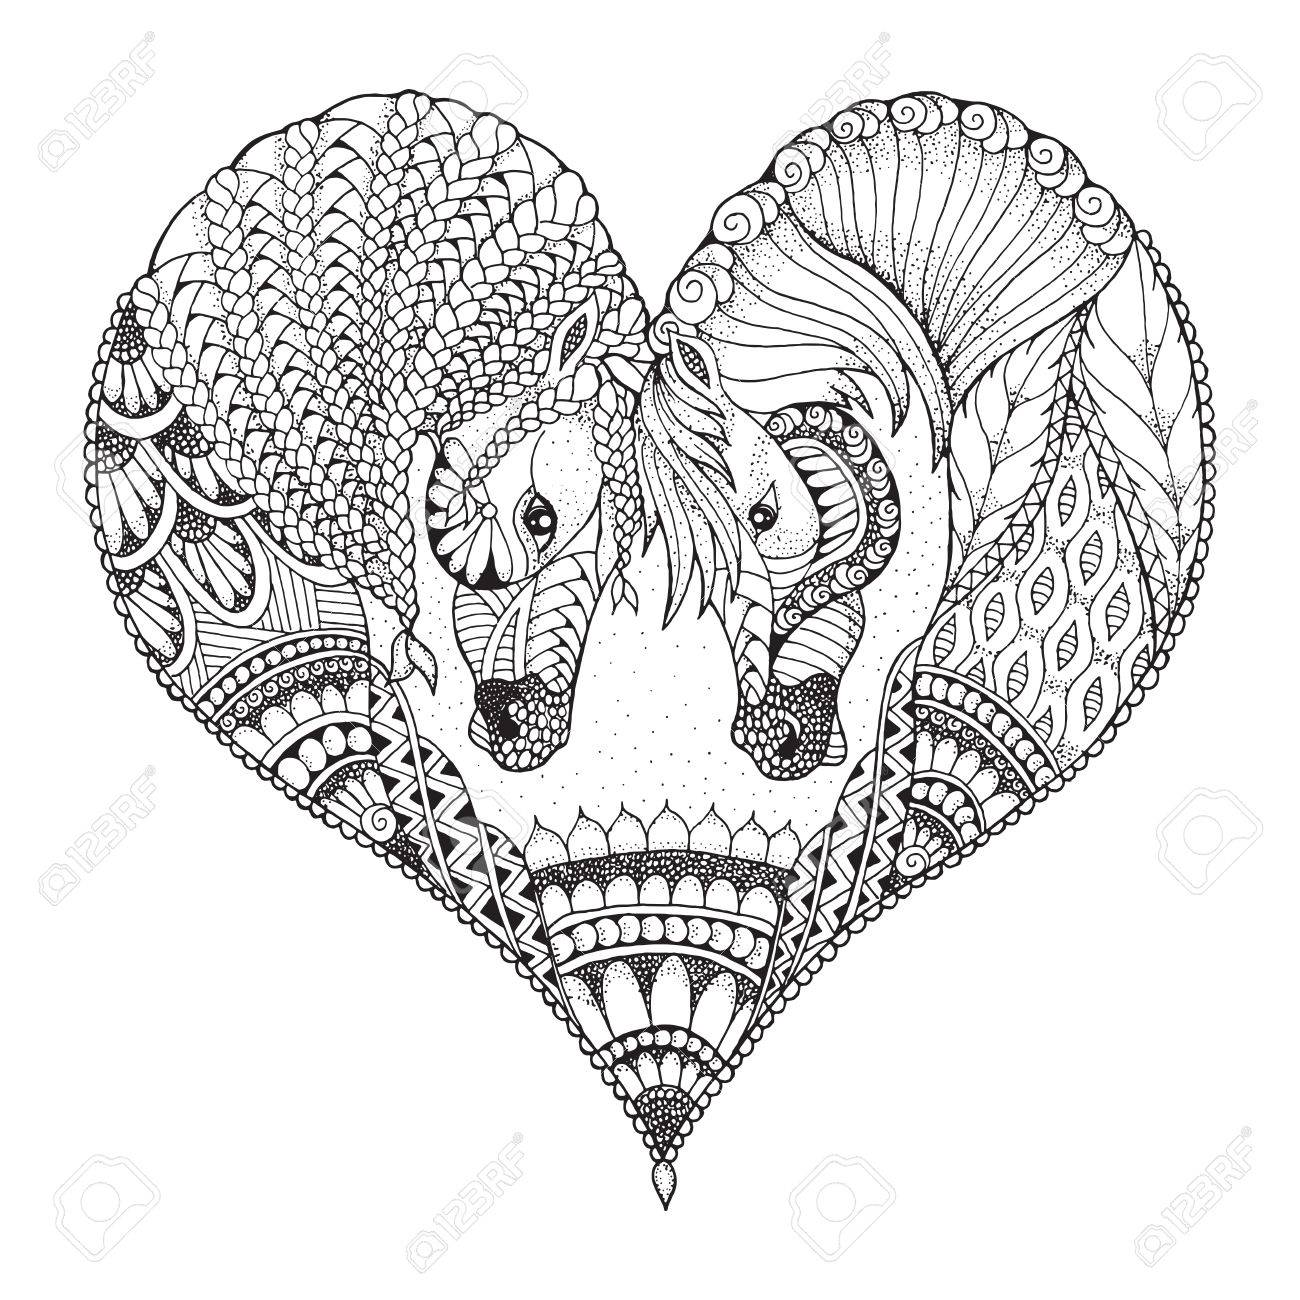 Two horses showing affection in a heart shape. Zentangle and stippled stylized vector illustration. Pattern. Black and white illustration on white background. Adult anti-stress coloring book. Print for t-shirts. - 82073090